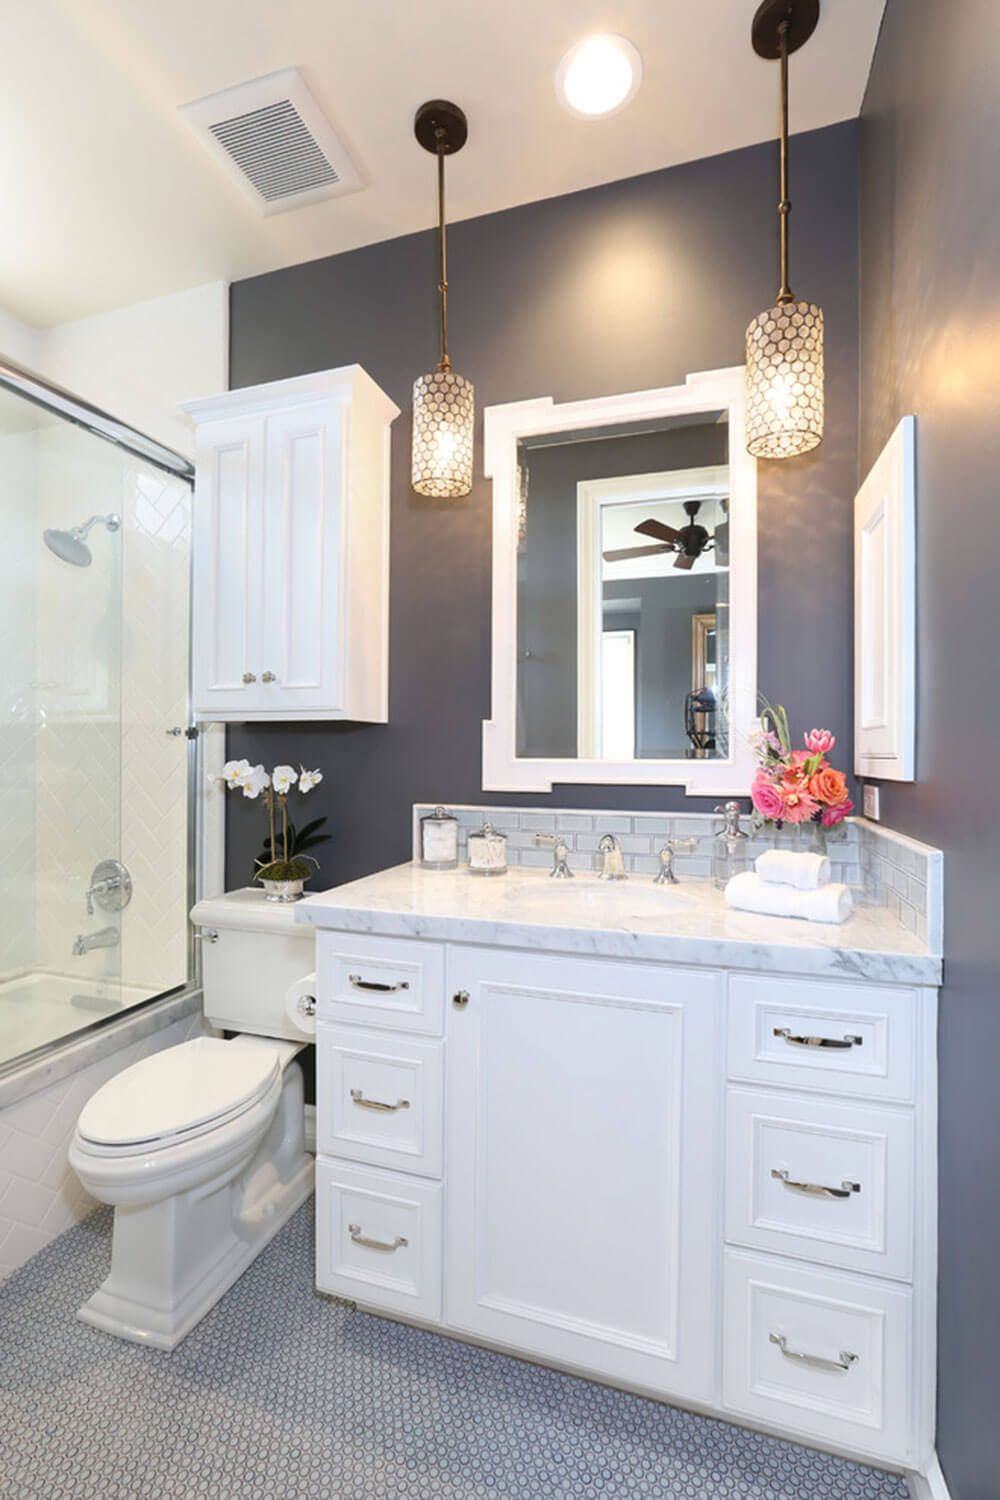 Uncluttered Color Scheme In Dark Gray And White Bathroom Remodel Small Remodeling